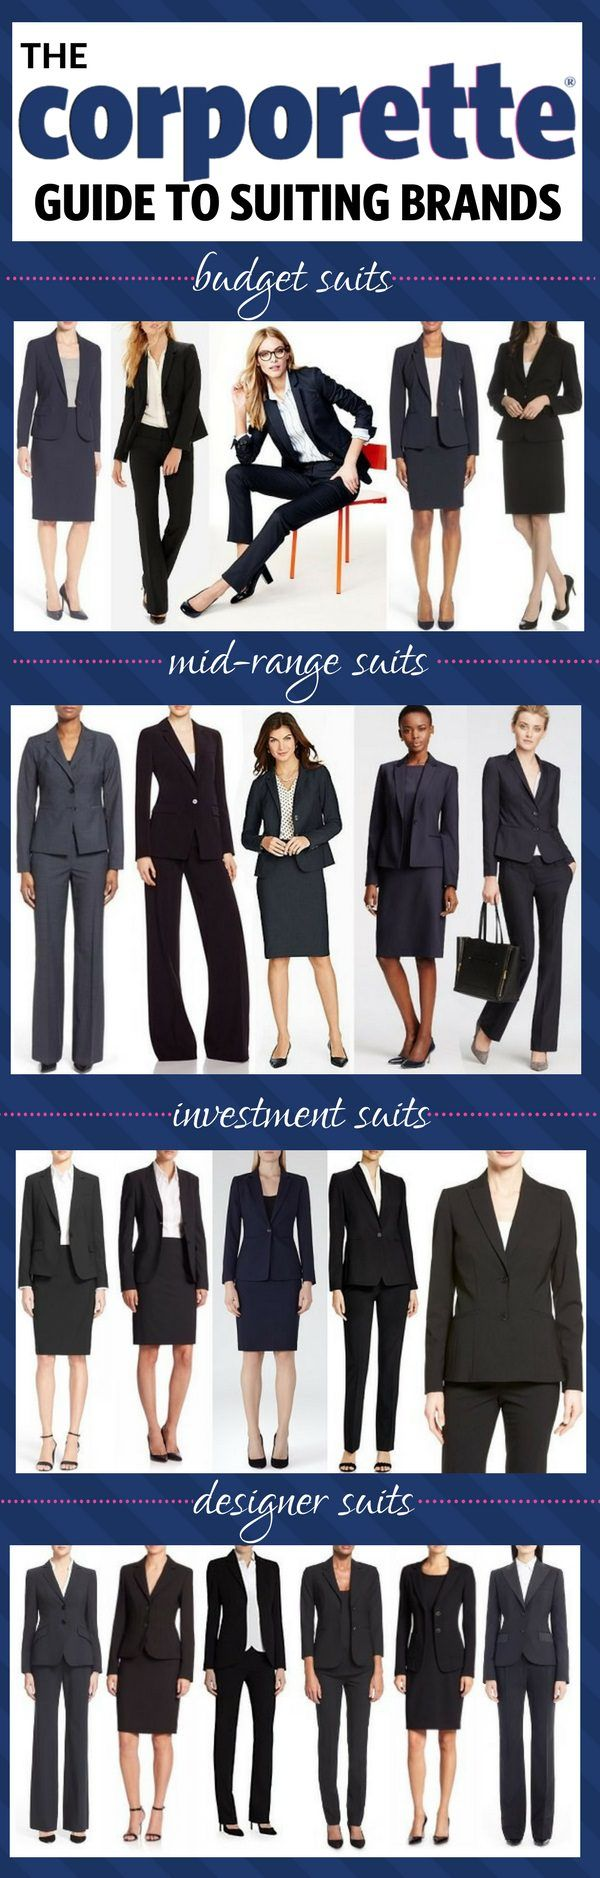 Suits for Women  A Guide to the Best Suiting Brands for Women adcb299a73e89